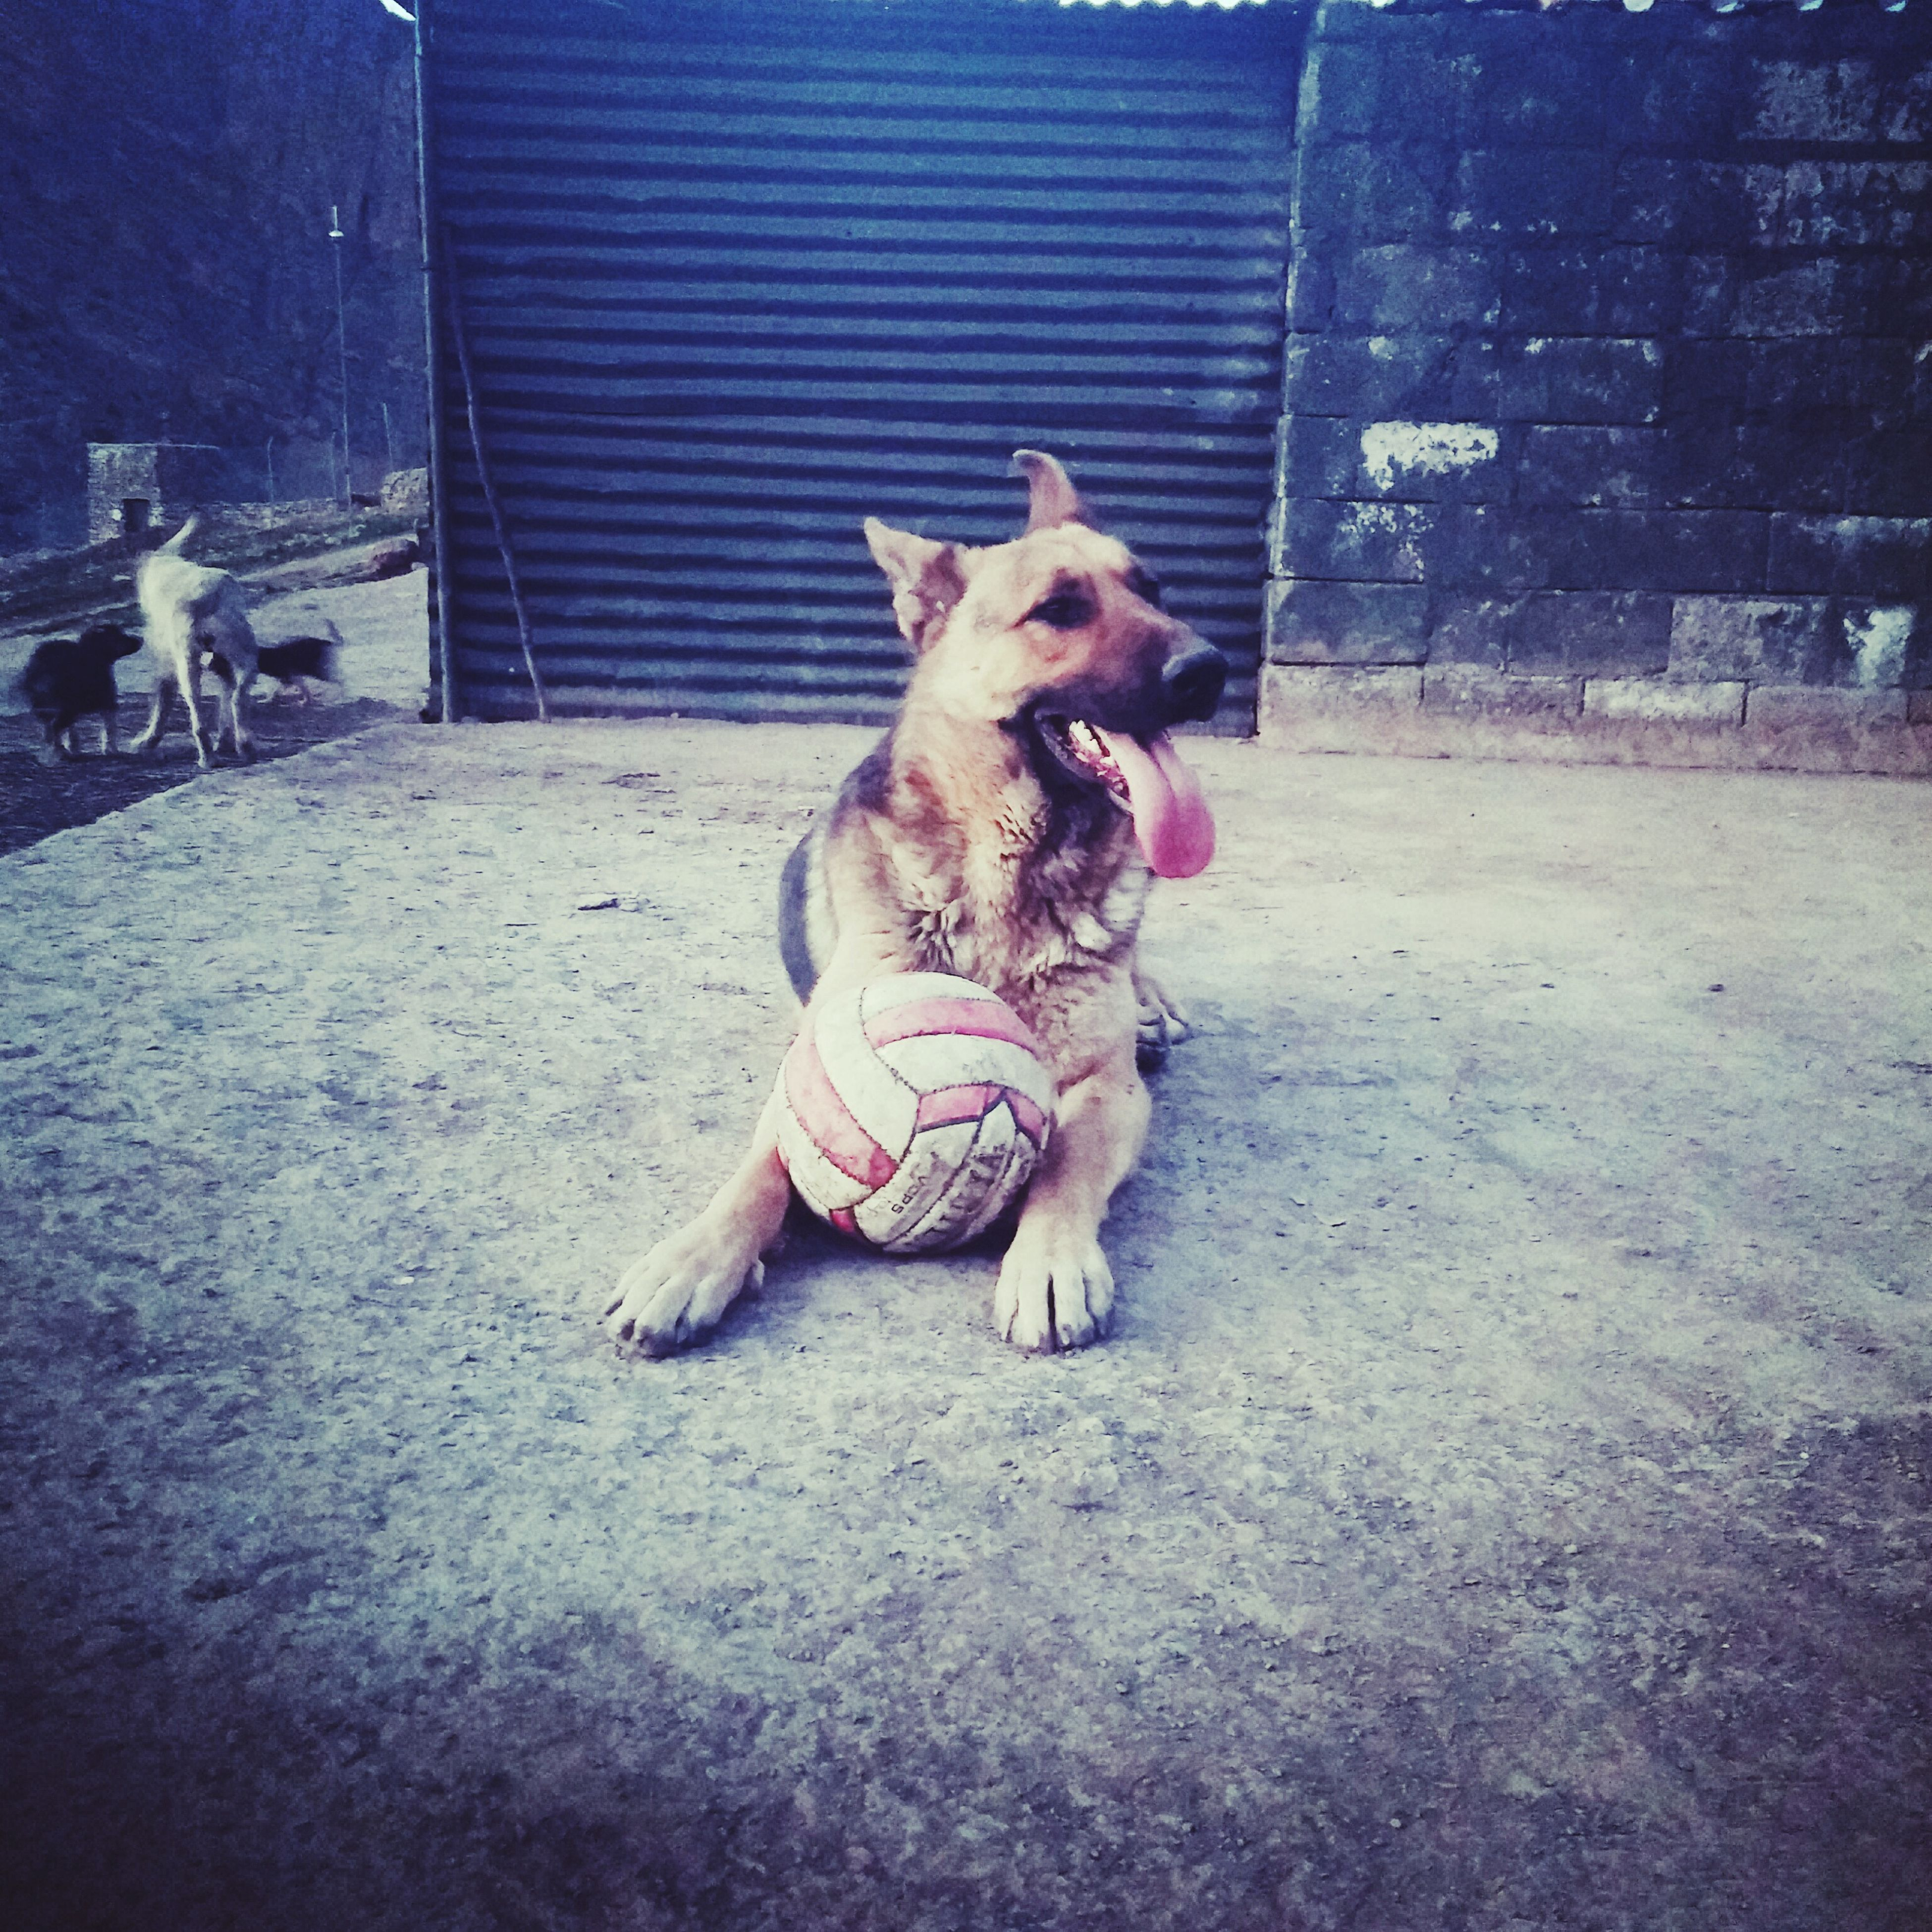 domestic animals, animal themes, mammal, pets, dog, one animal, full length, relaxation, two animals, sitting, pet collar, built structure, zoology, building exterior, lying down, livestock, pet leash, architecture, sunlight, animal